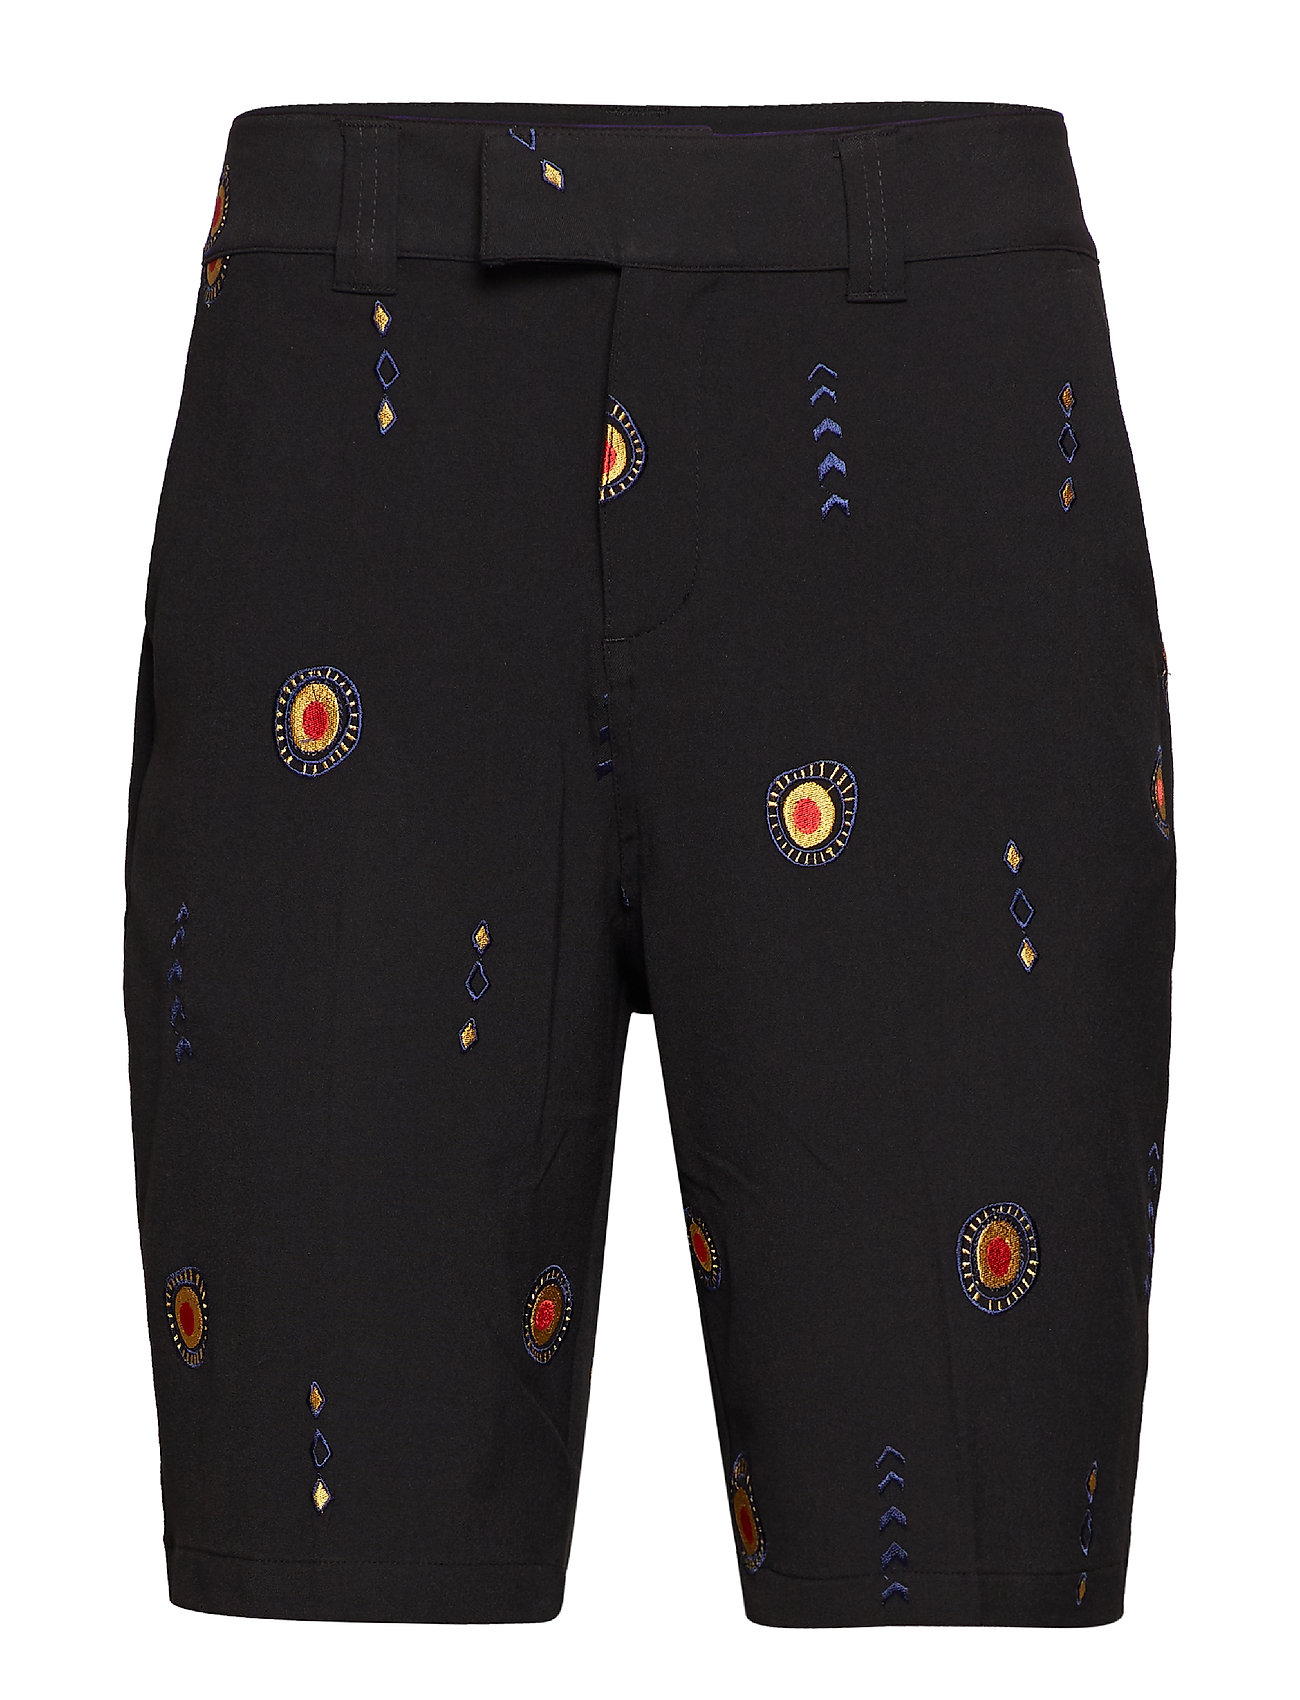 Soulland DAVIDOV BAGGY SHORTS W. EMBROIDERIES - BLACK